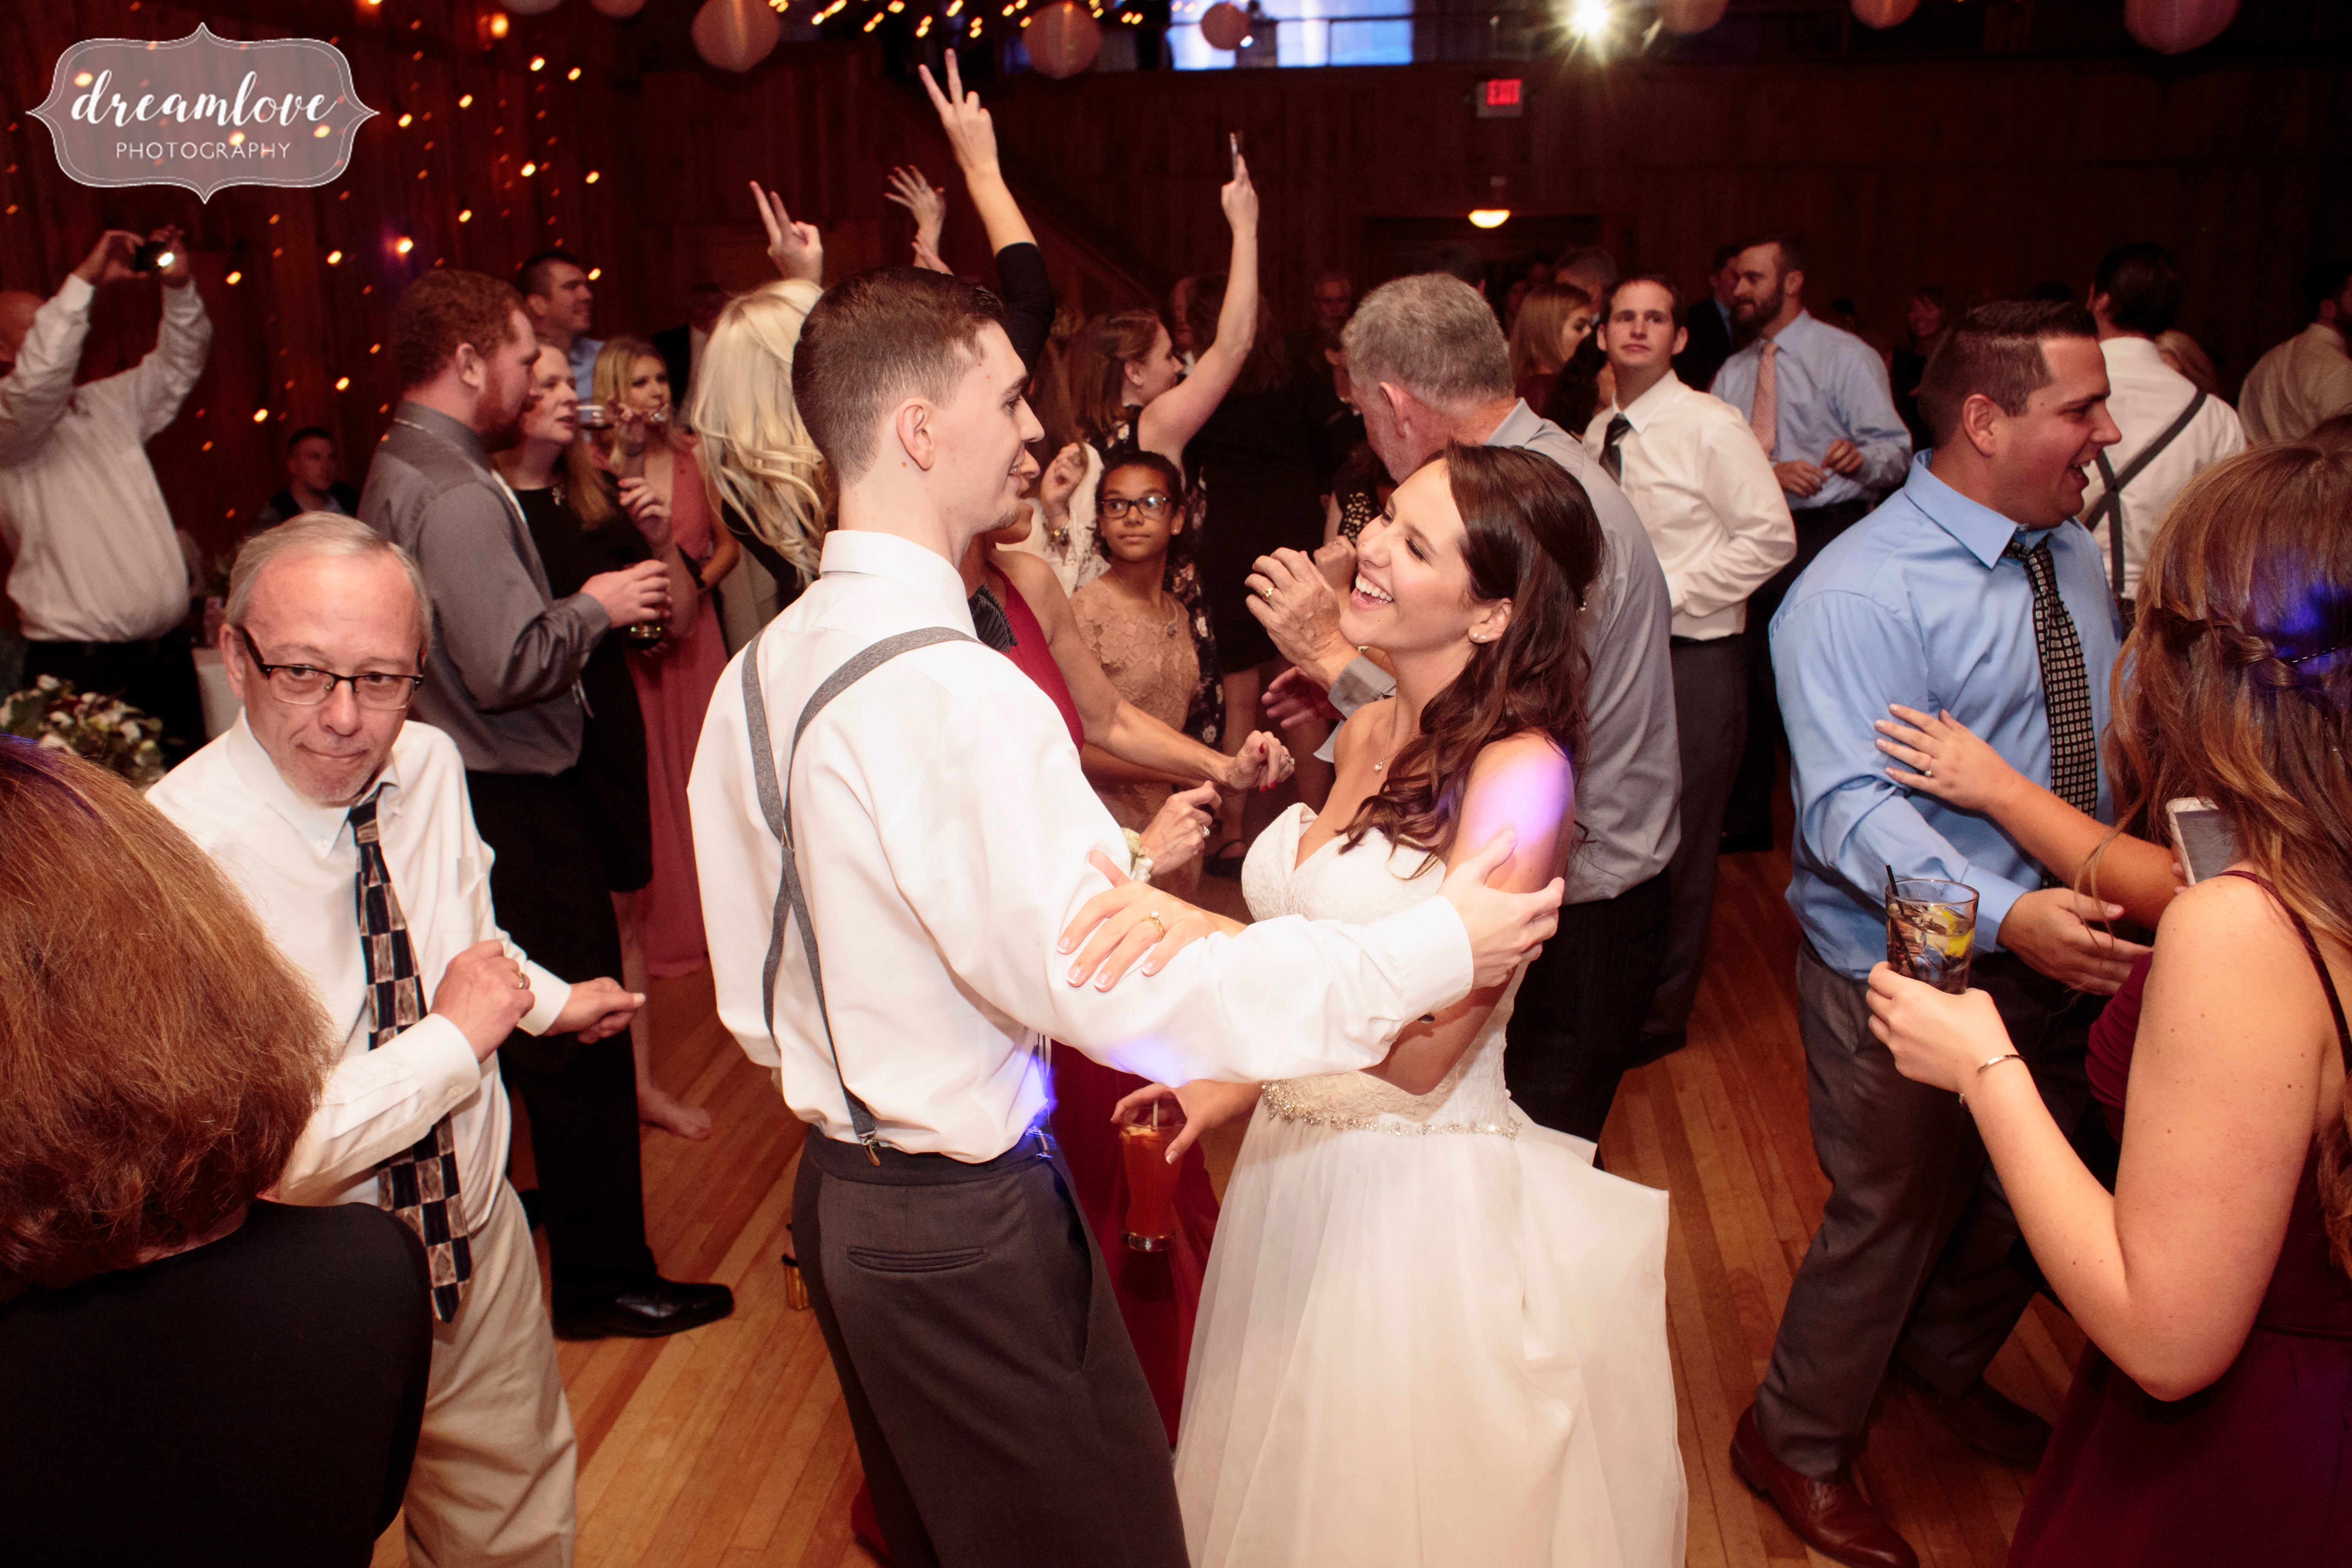 The bride and groom dance on the dance floor at the Crystal Lake Pavilion.